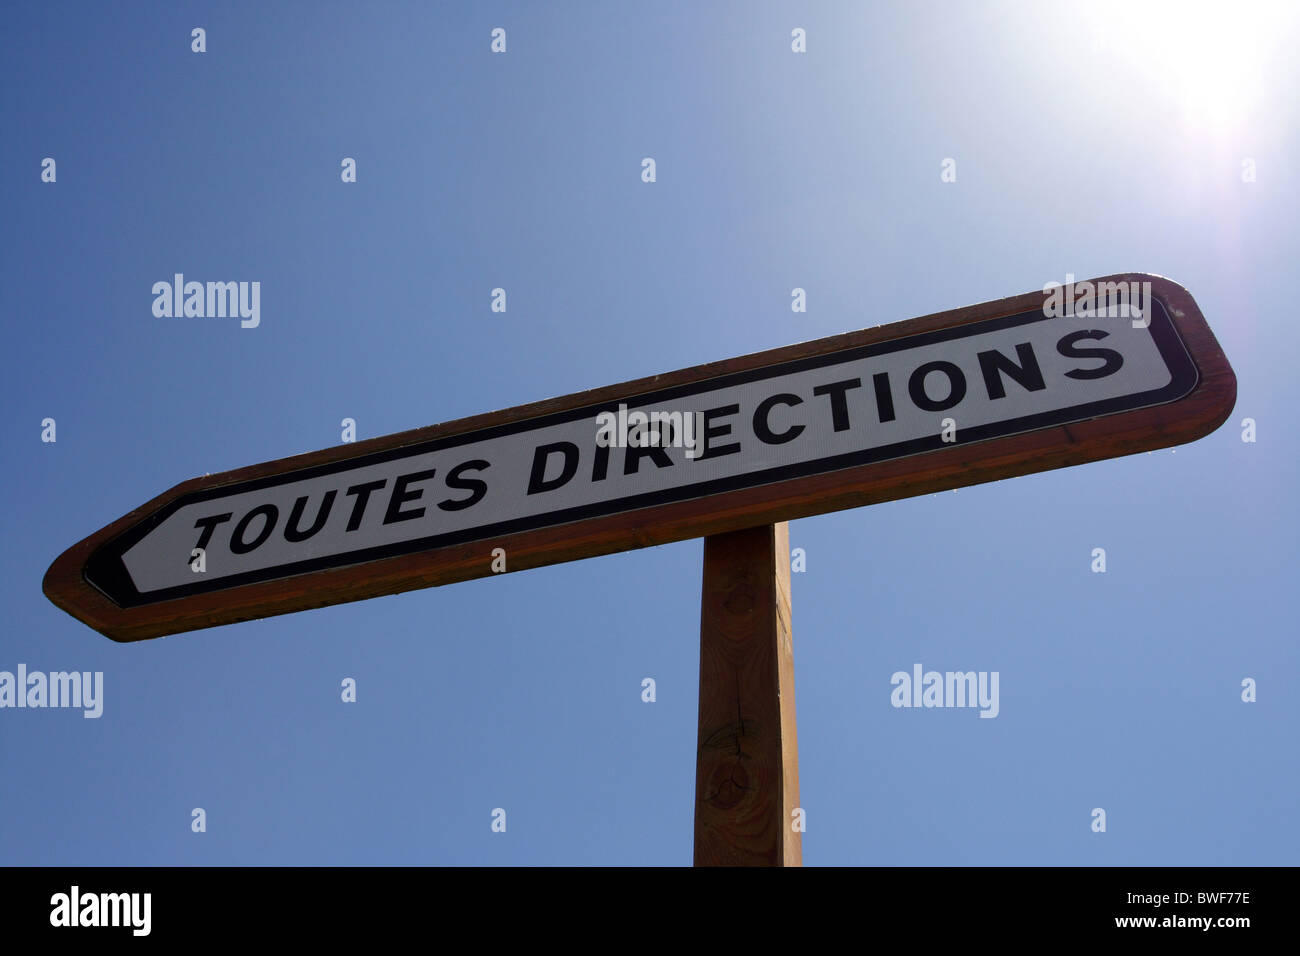 A sign TOUTES DIRECTIONS (all directions), Tignes, France - Stock Image